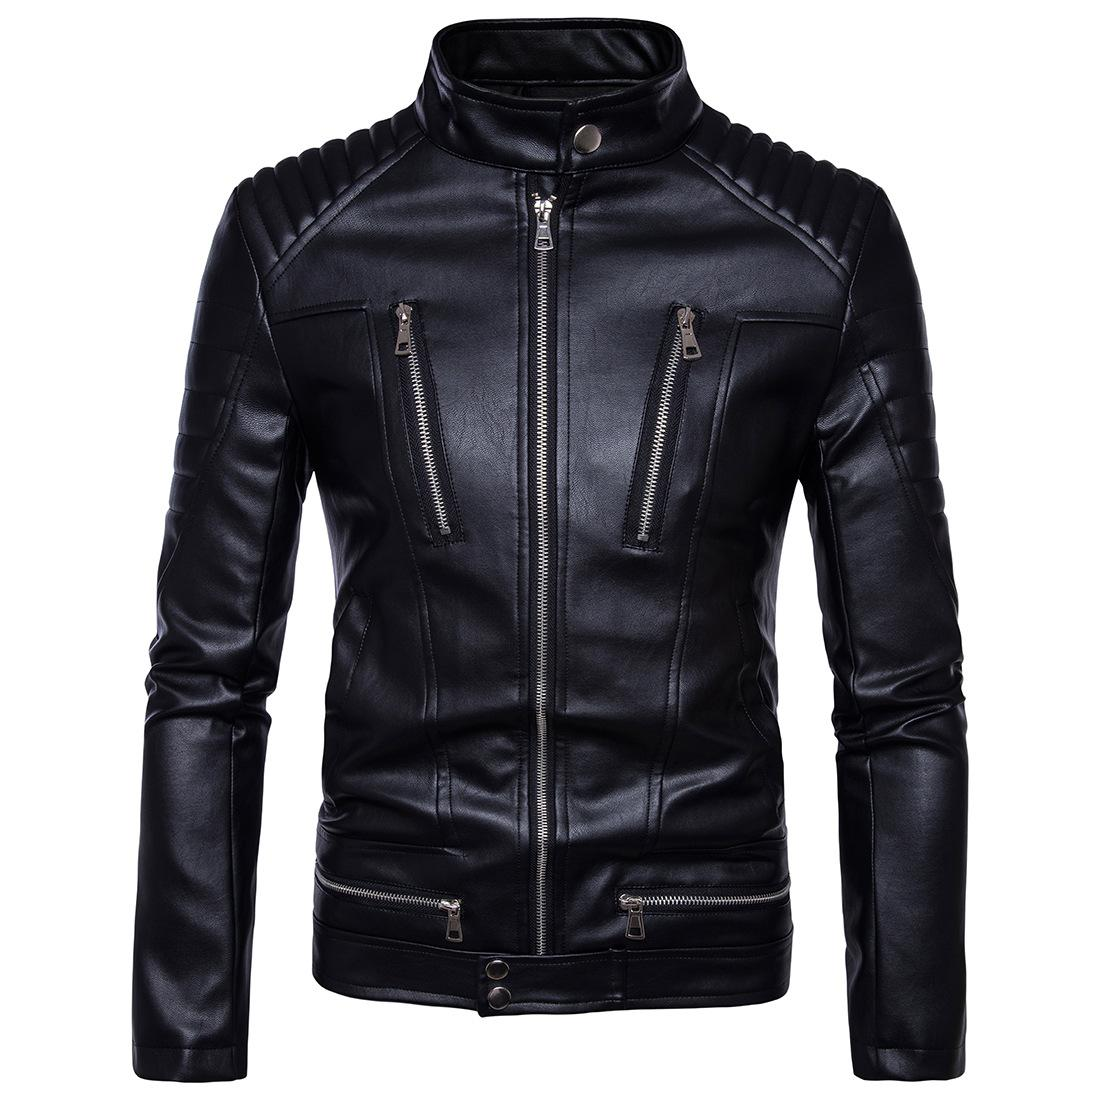 Best Leather Motorcycle Jackets 2017